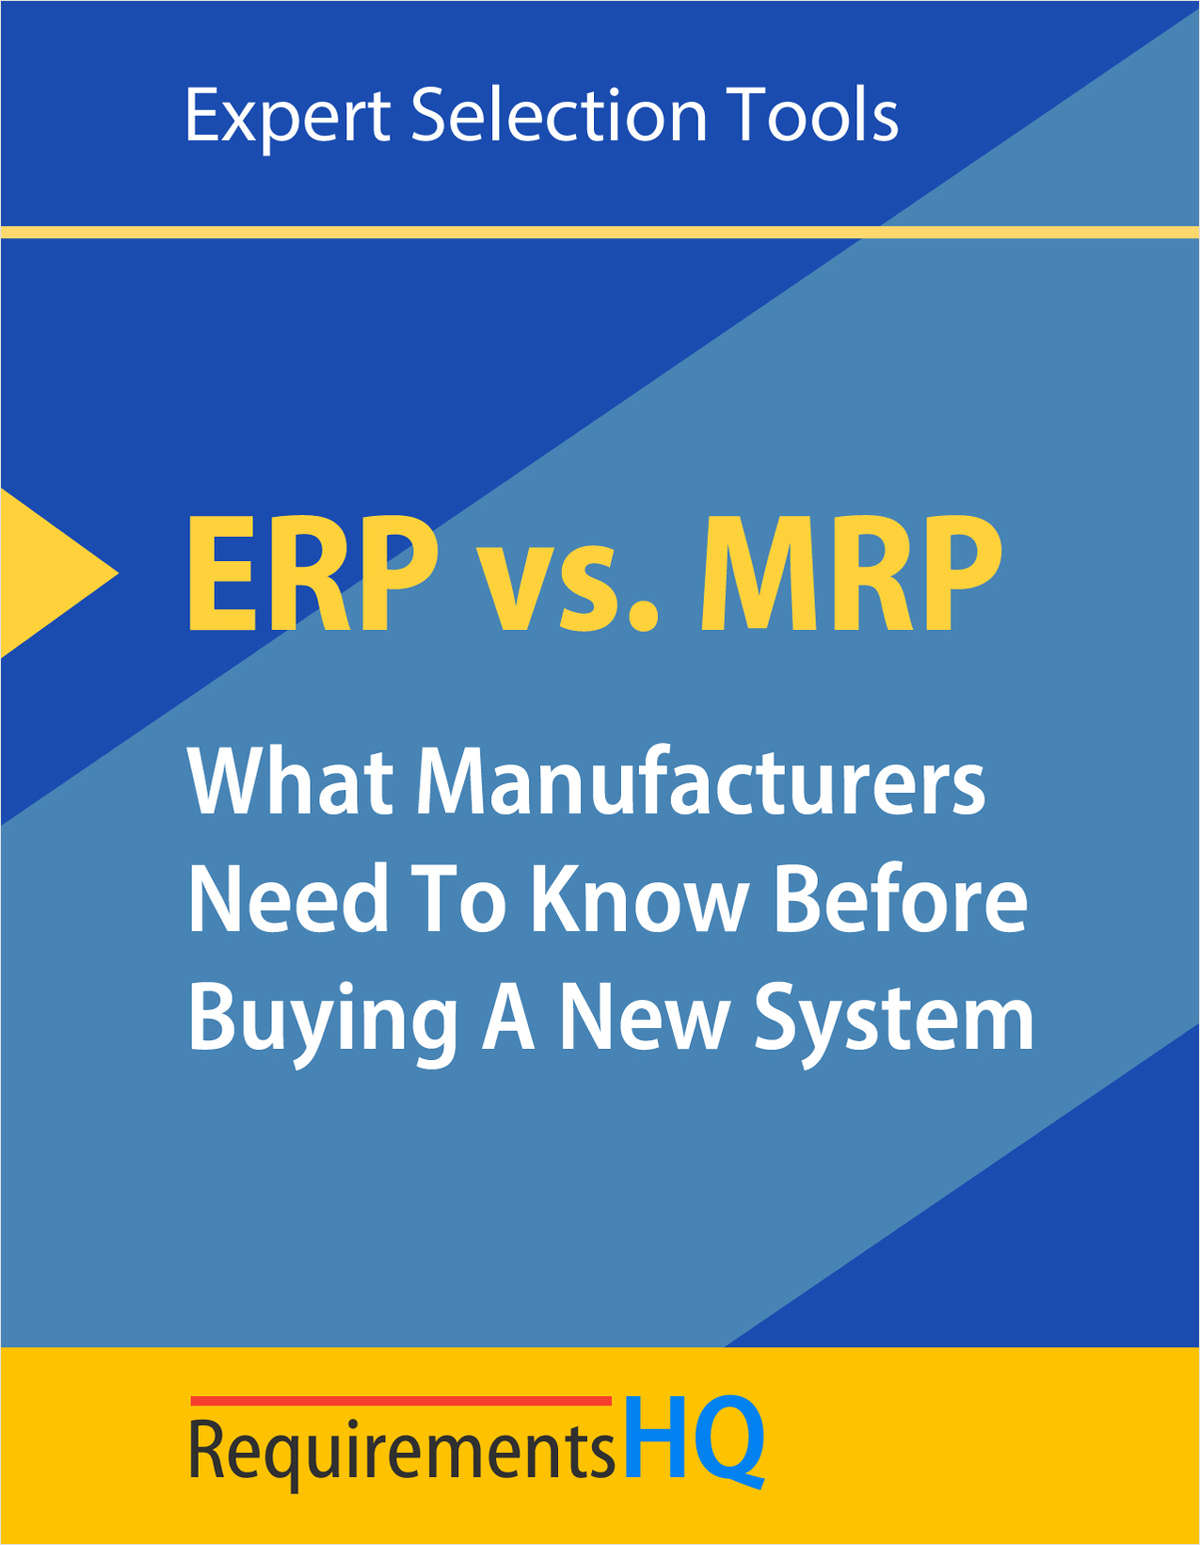 ERP vs. MRP--What Manufacturers Need to Know Before Buying a New System in 2021